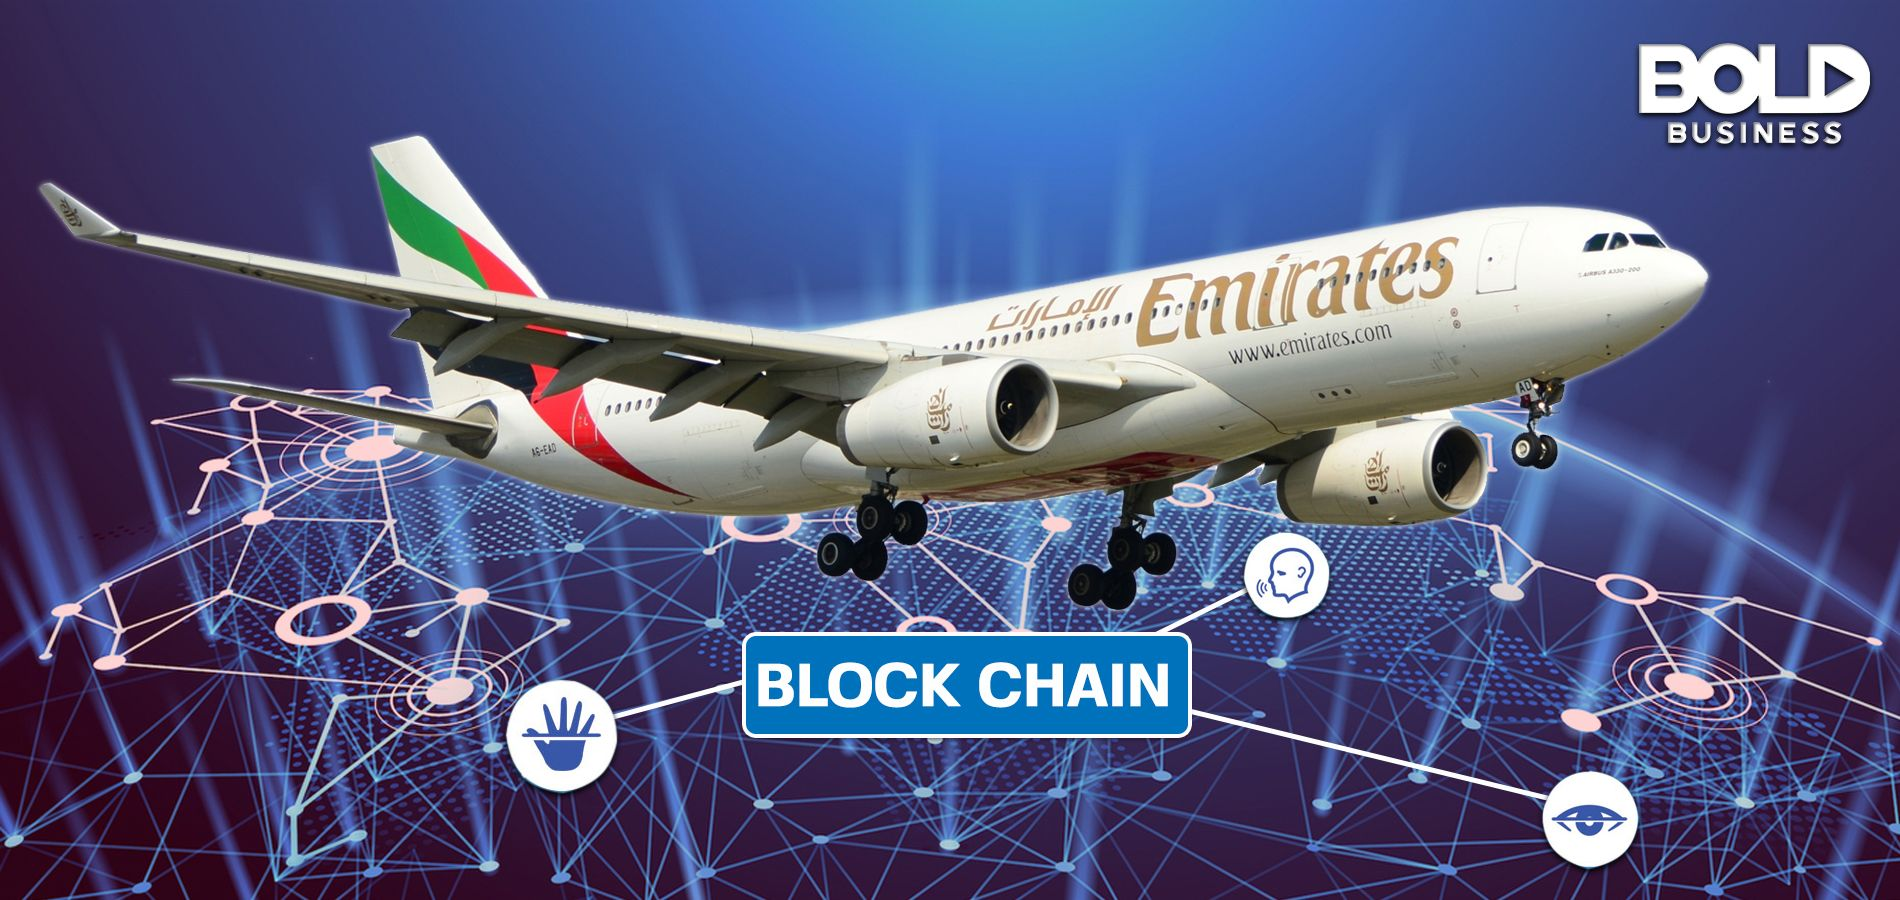 blockchain technology in aviation will further improve processes in major airlines